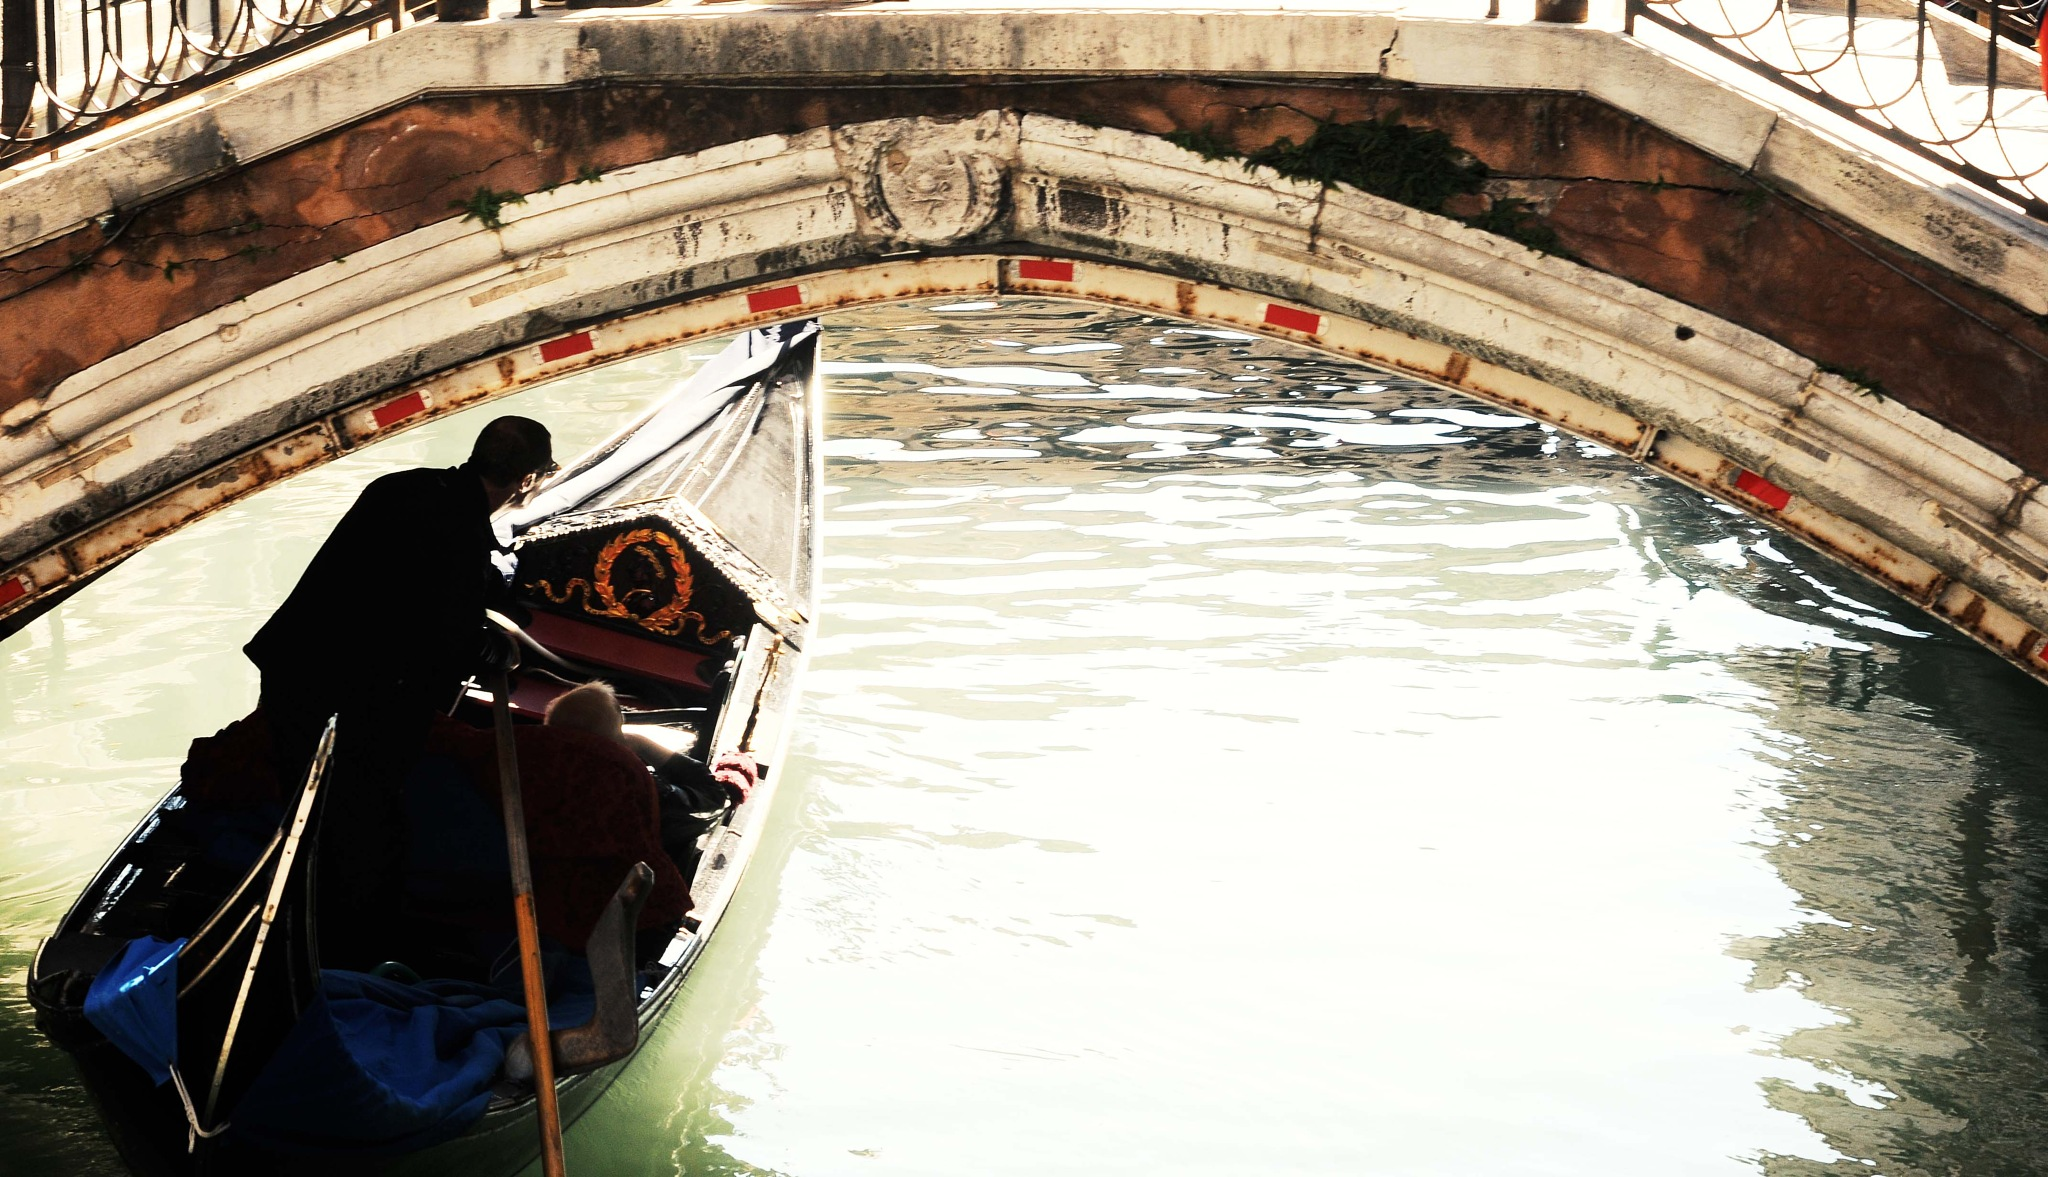 Gondolier by Chuculain